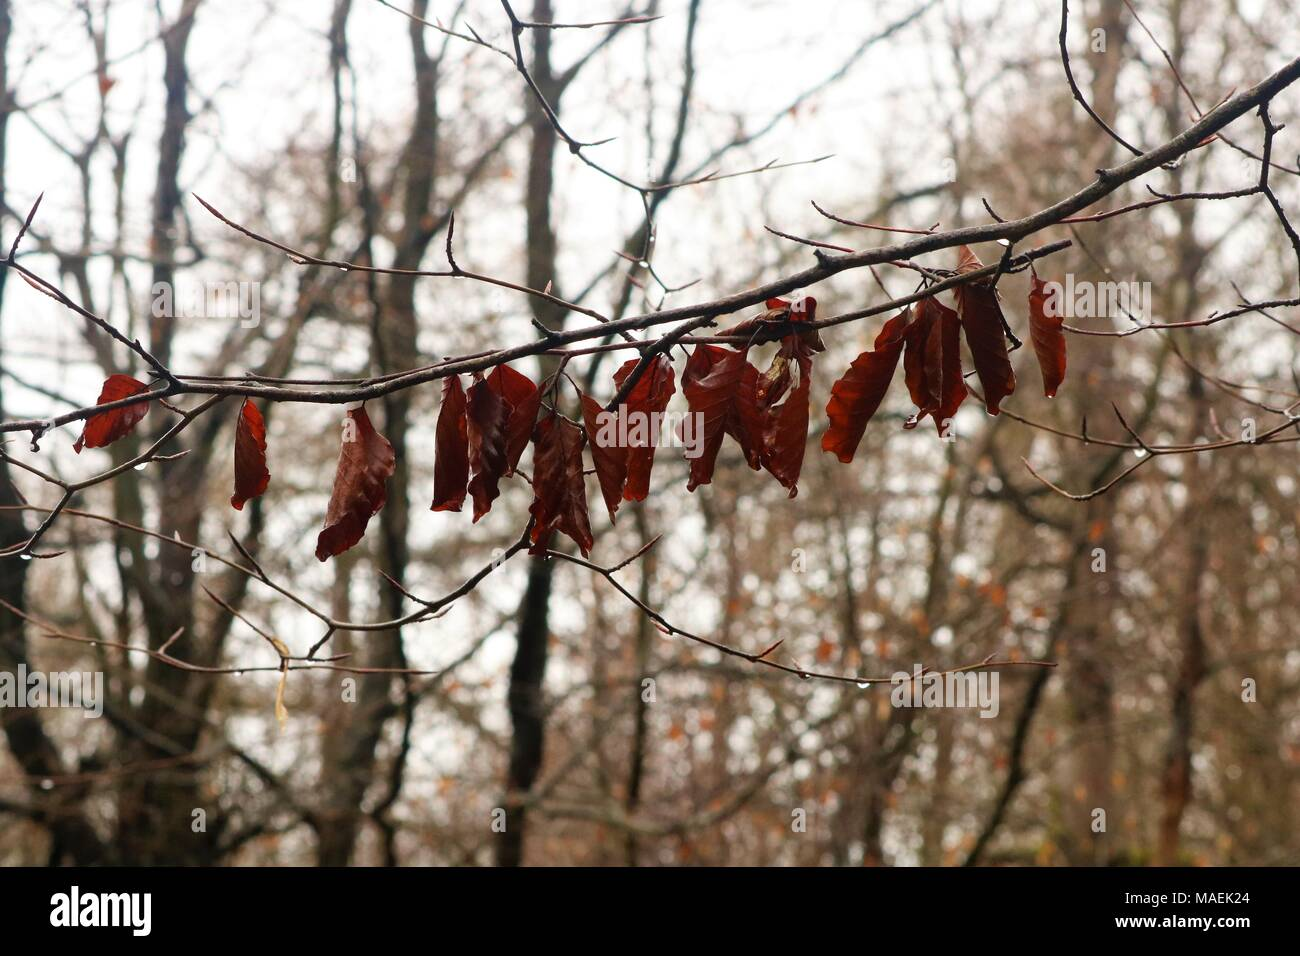 Dead leaves still hanging onto branch all in a row with blurred background - Stock Image